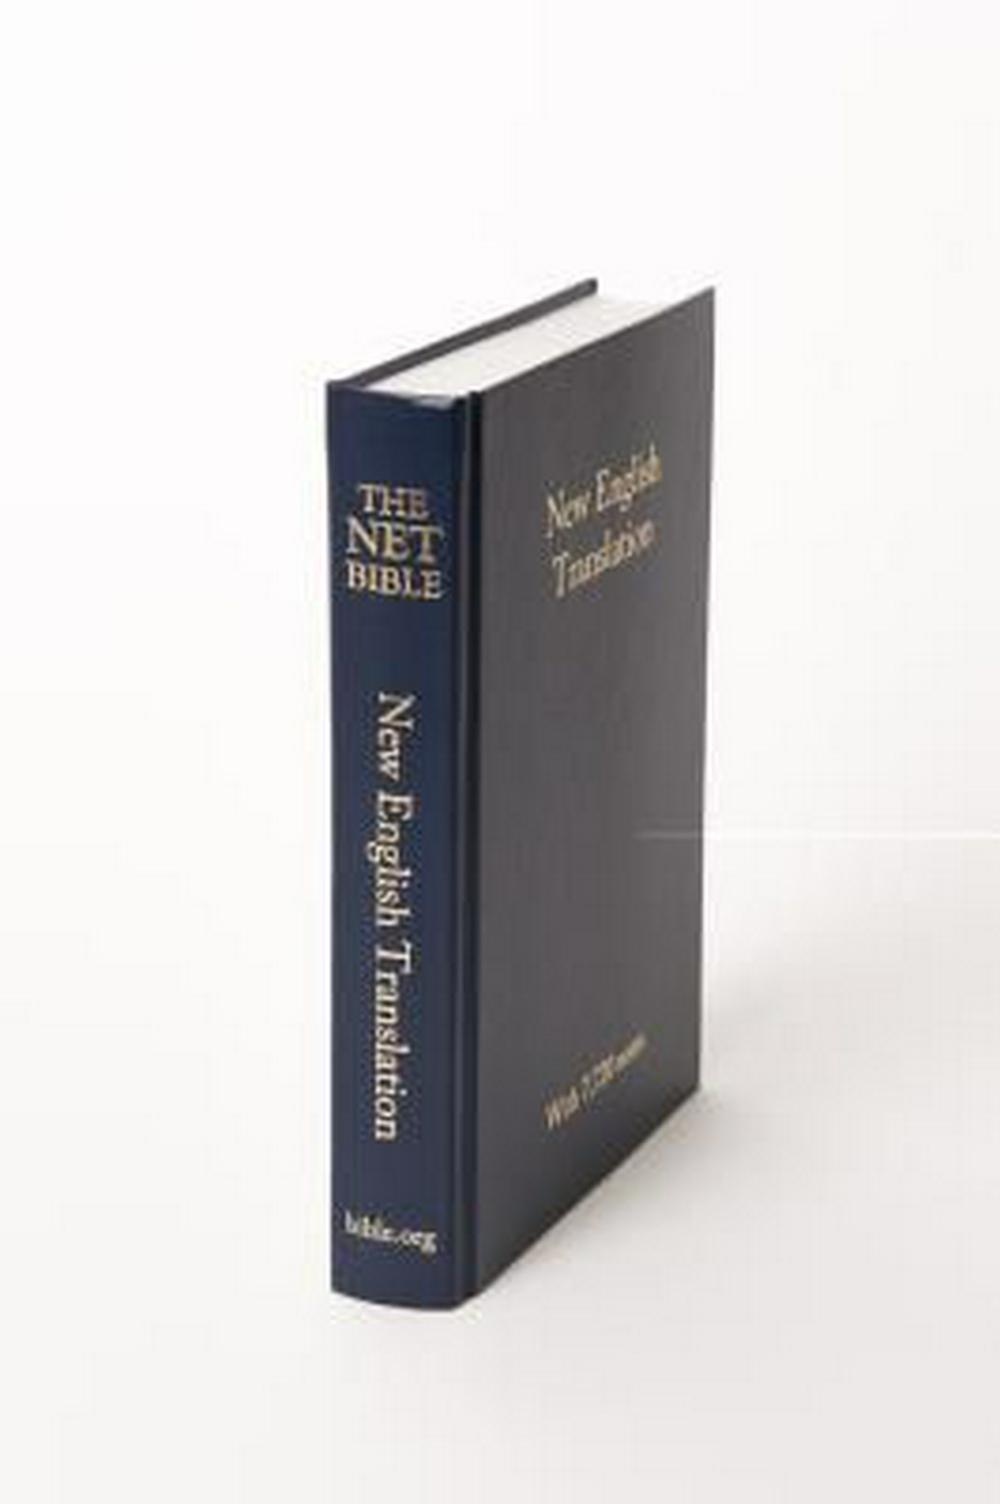 Net Bible - Pew Bible - Blue Hardcover